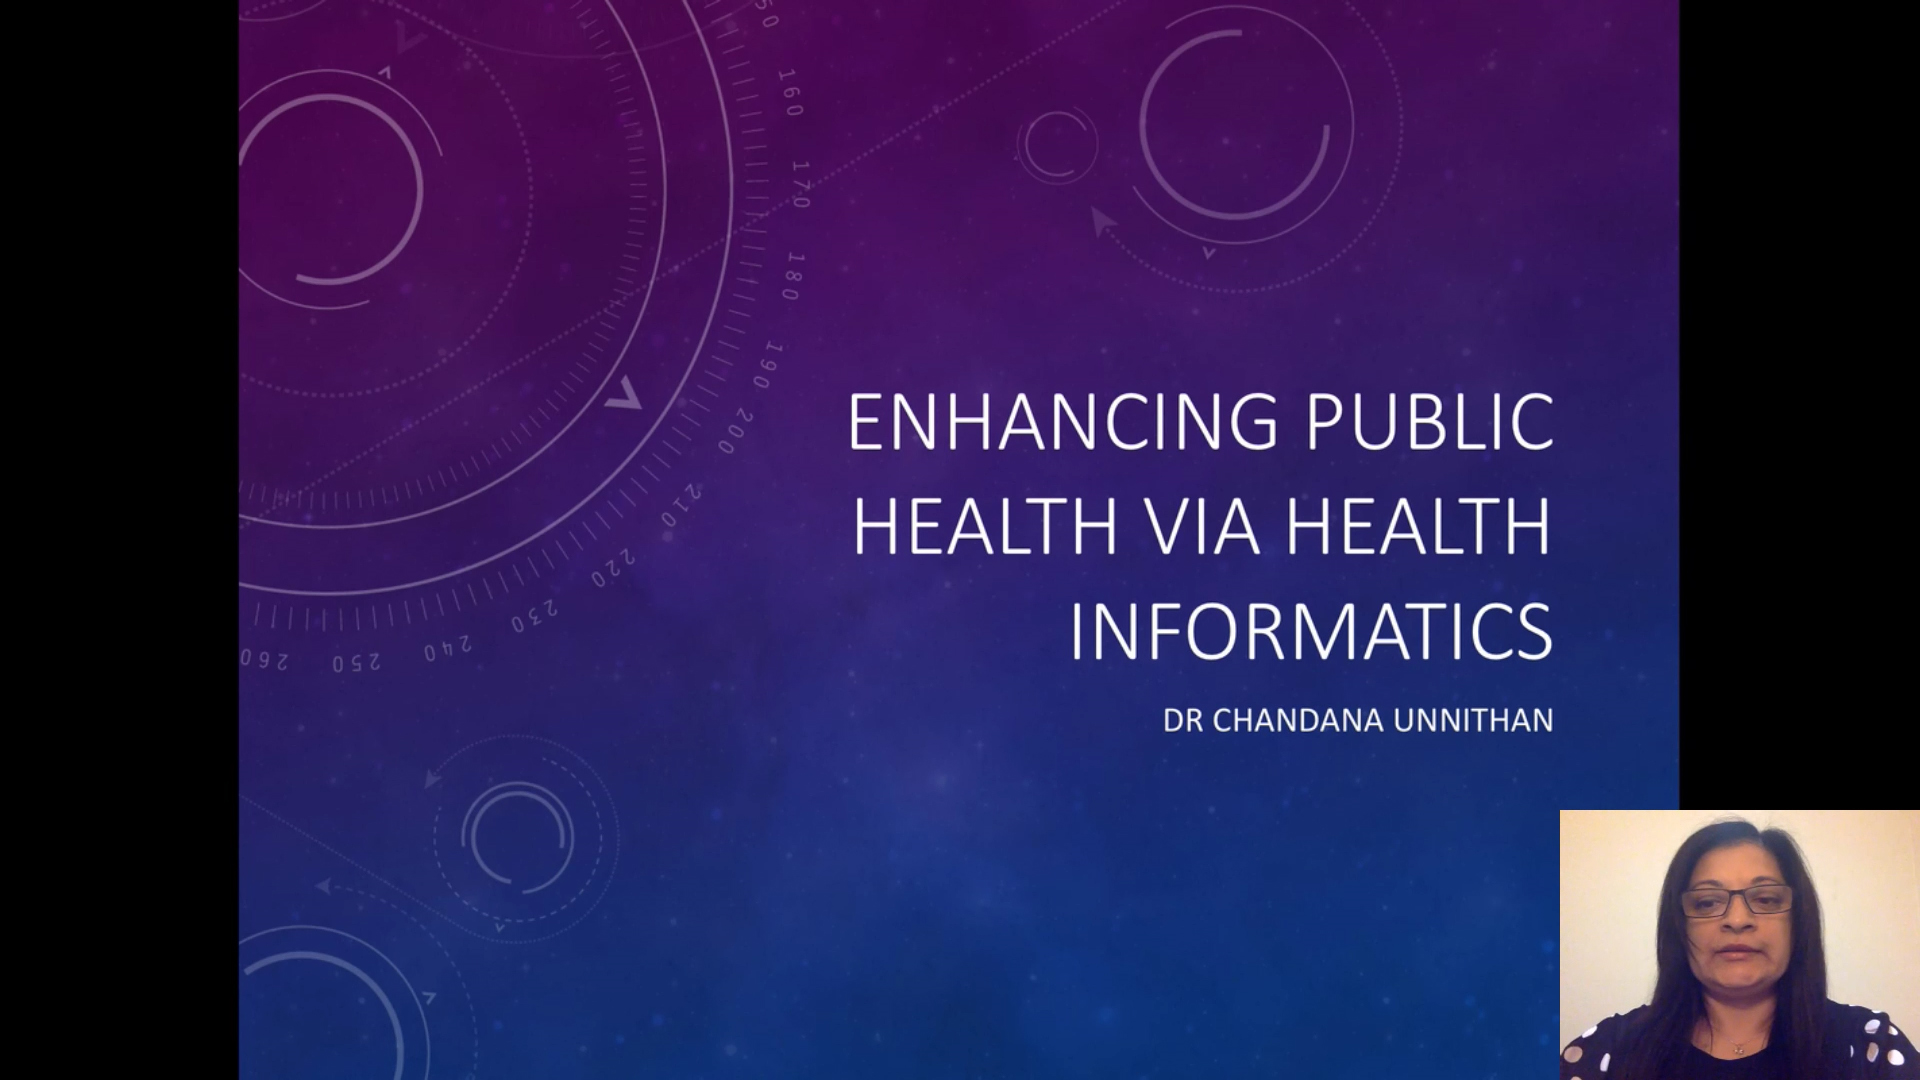 Enhancing Public Healthcare through the Integration of Health Informatics